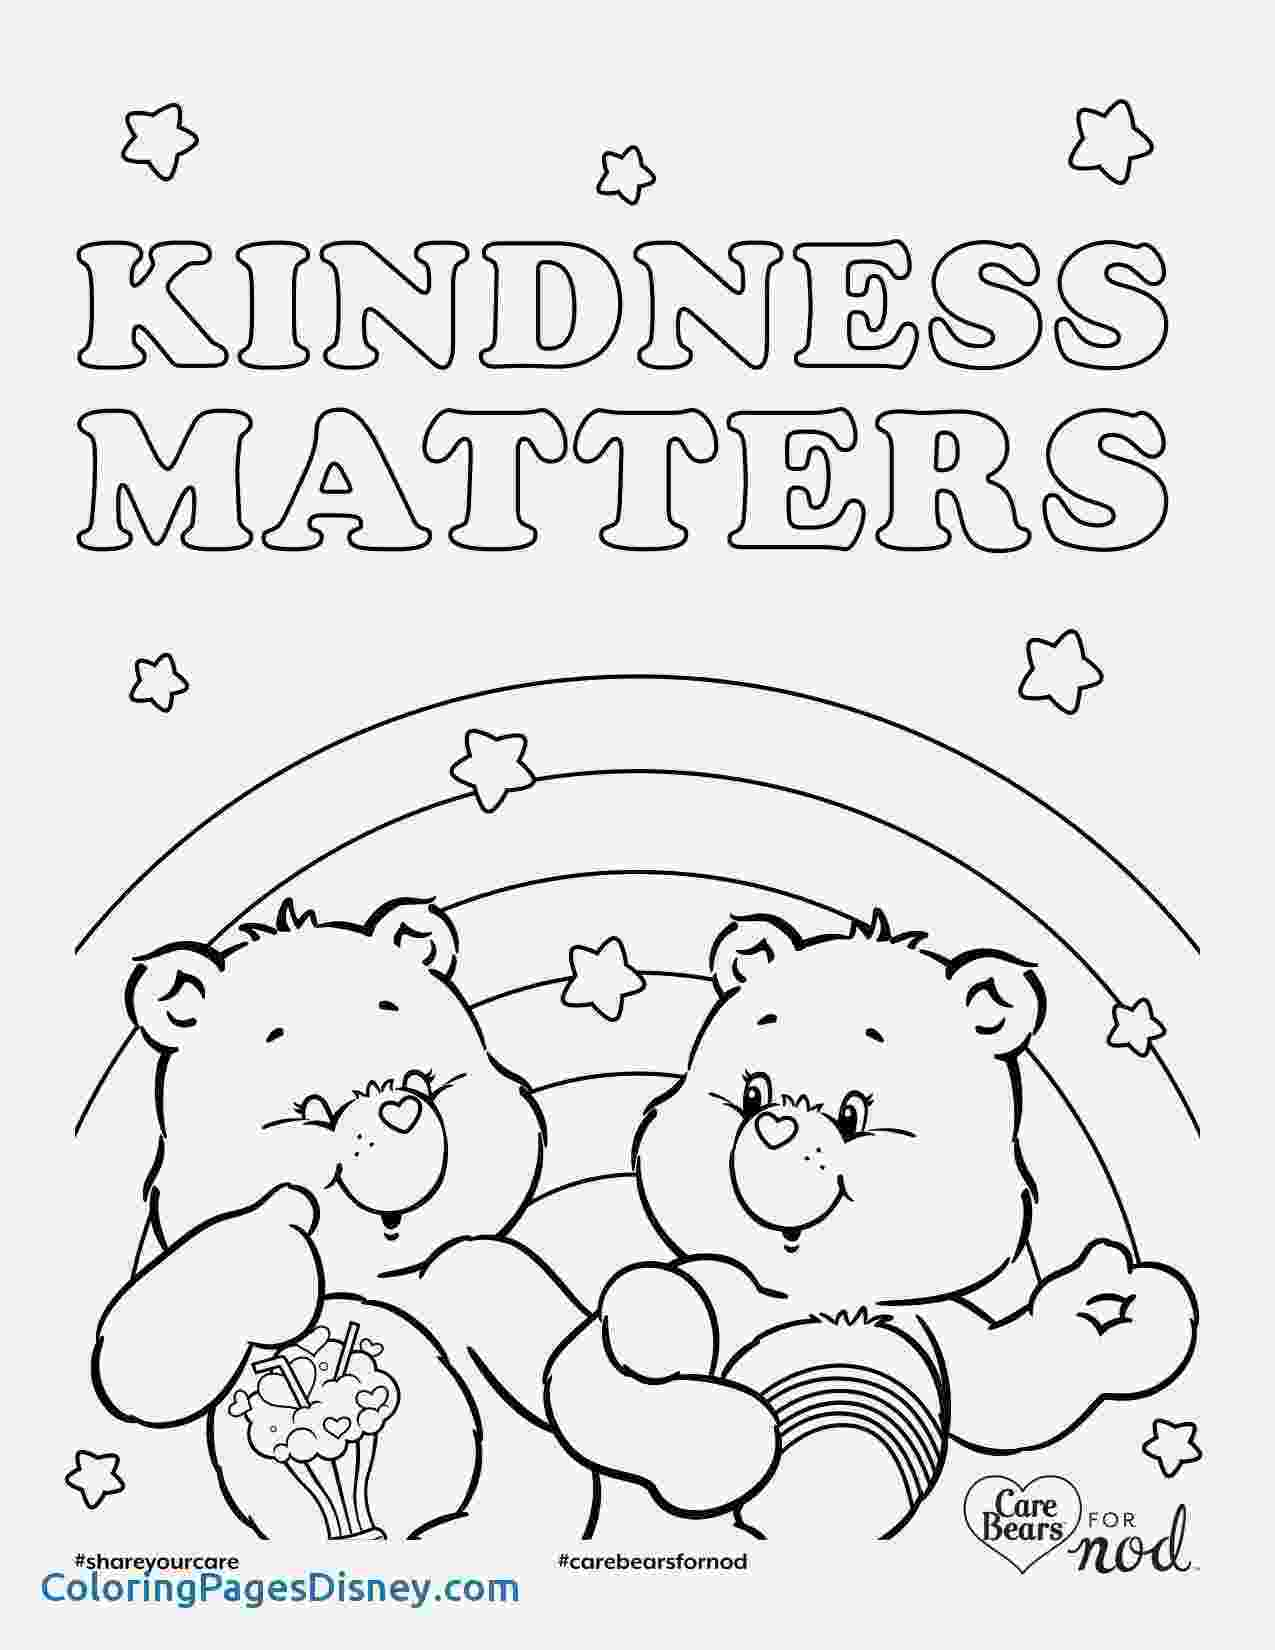 old testament coloring pages 21 new testament coloring pages for kids collection old pages coloring testament